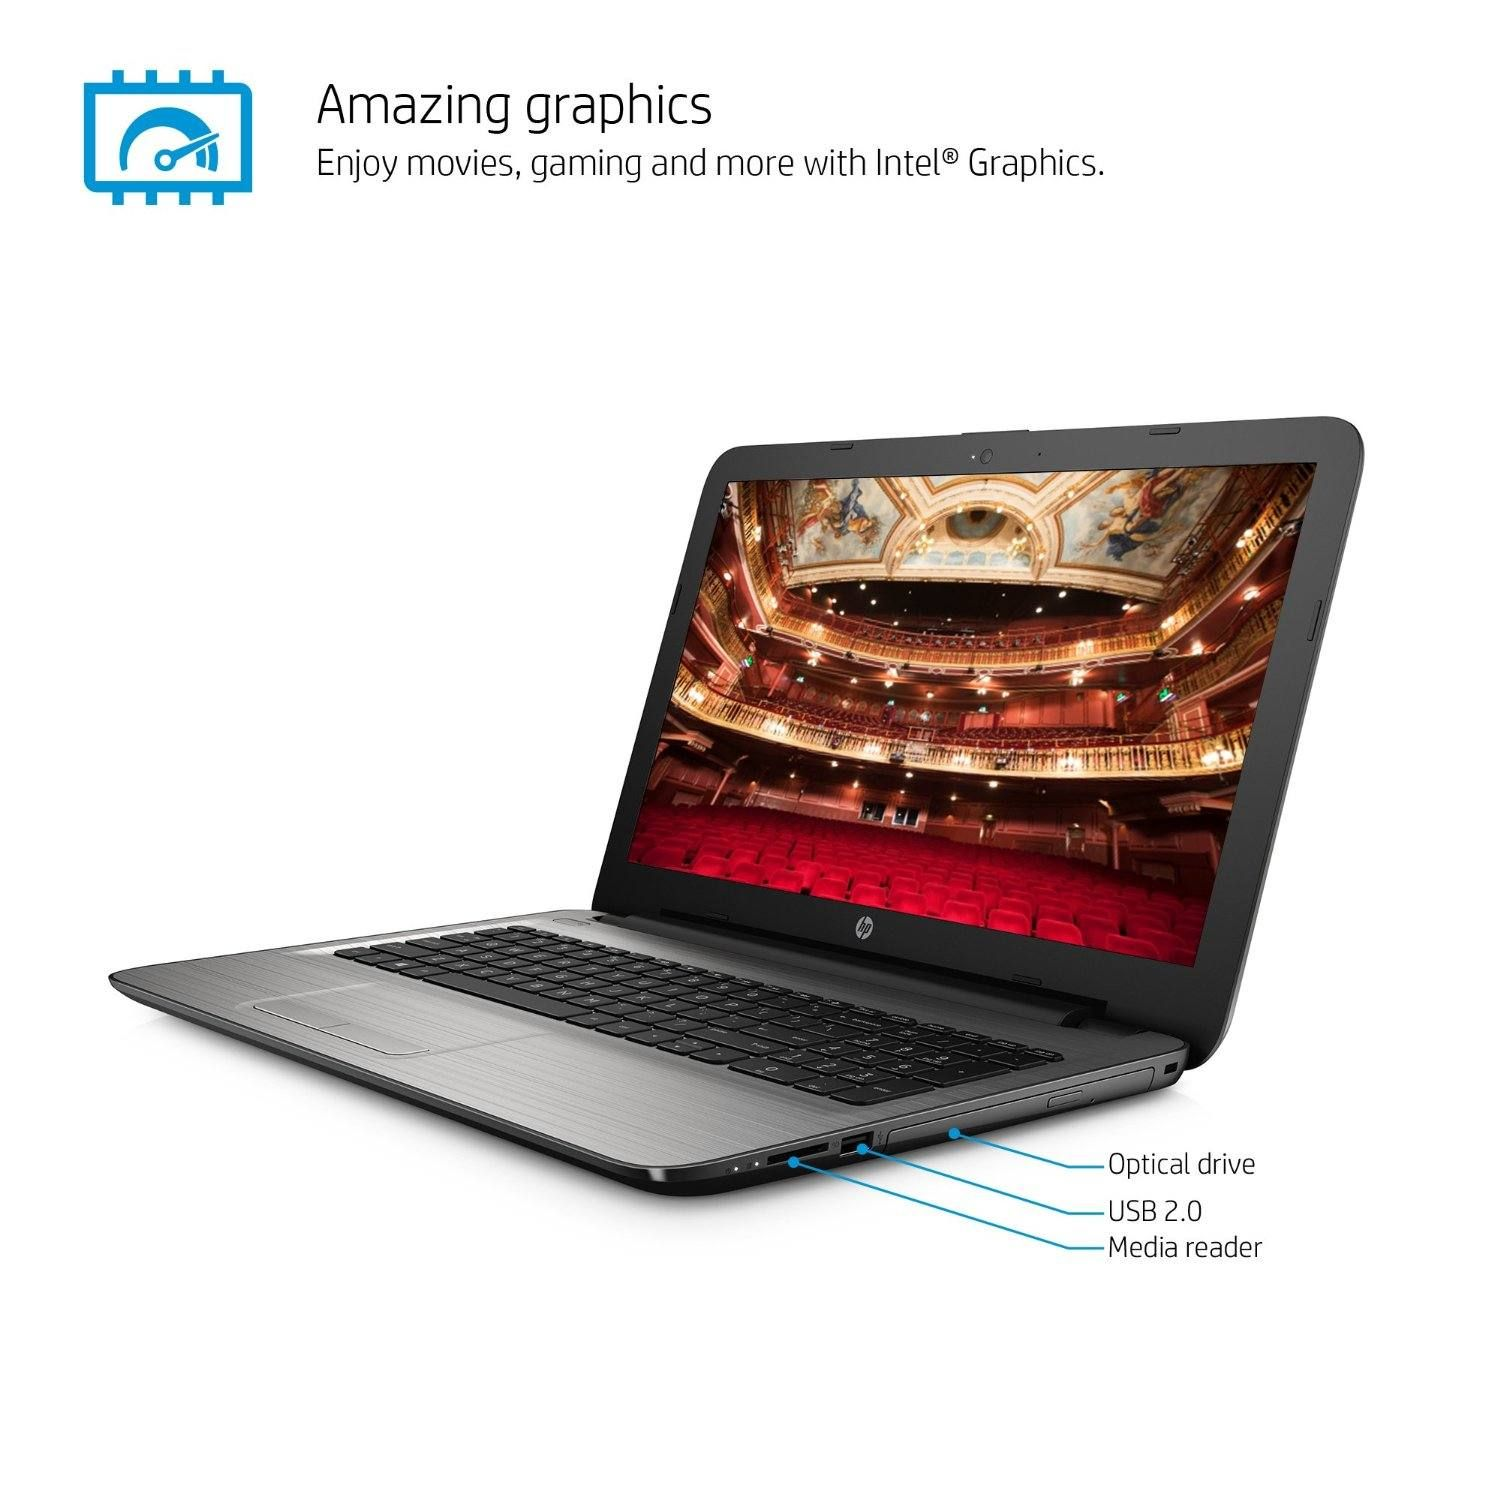 Dell Inspiron I7559 3762GRY 15.6 Inch Touchscreen Laptop (6th Generation  Intel Core I5, 8 GB RAM, 1 TB HDD + 8 GB SSD) NVIDIA GeForce GTX 960M |  Pinterest ...